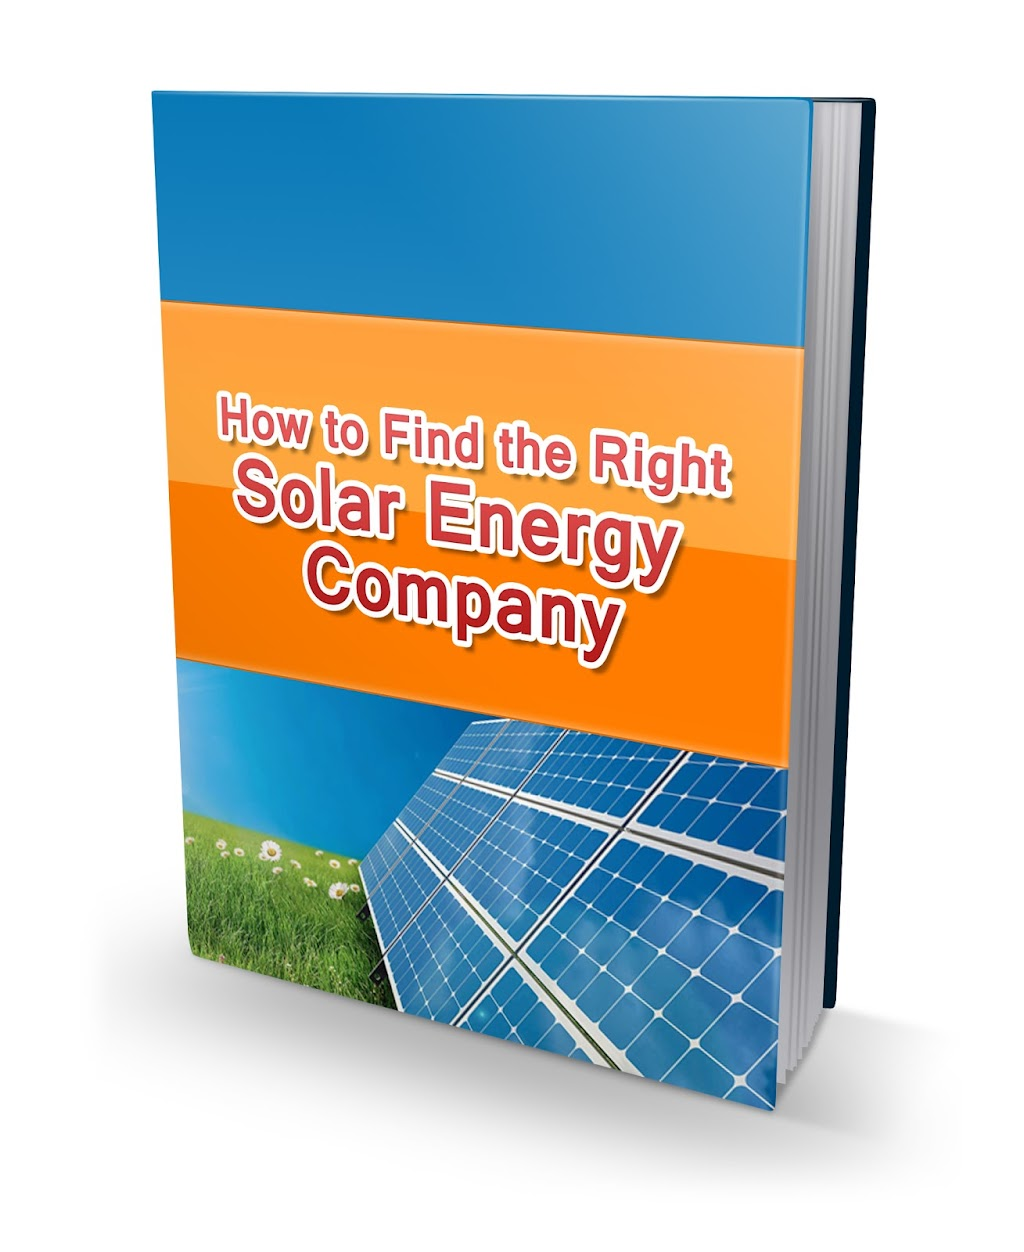 How to Find the Right Solar Energy Company book